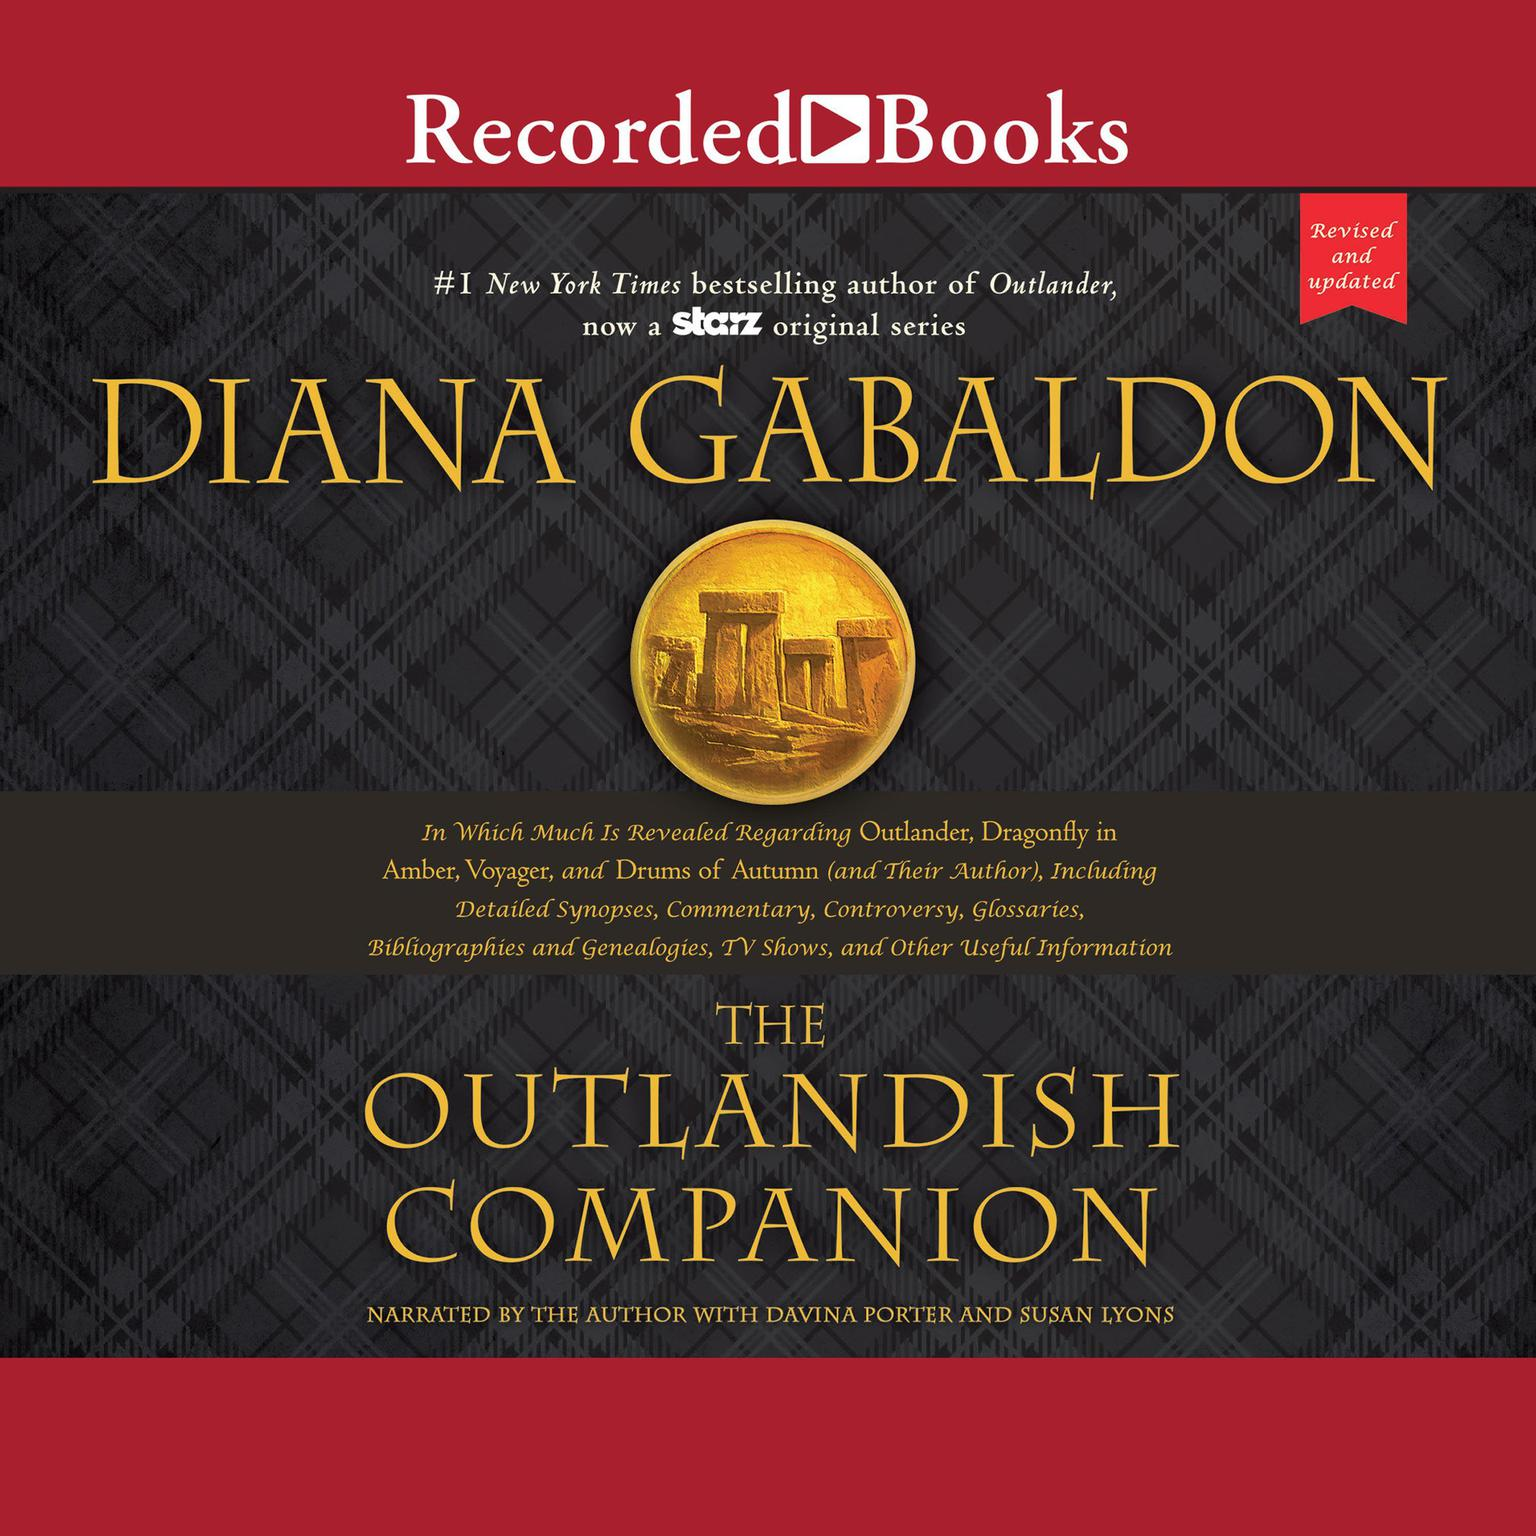 Printable The Outlandish Companion (Revised and Updated): Companion to Outlander, Dragonfly in Amber, Voyager, and Drums of Autumn Audiobook Cover Art